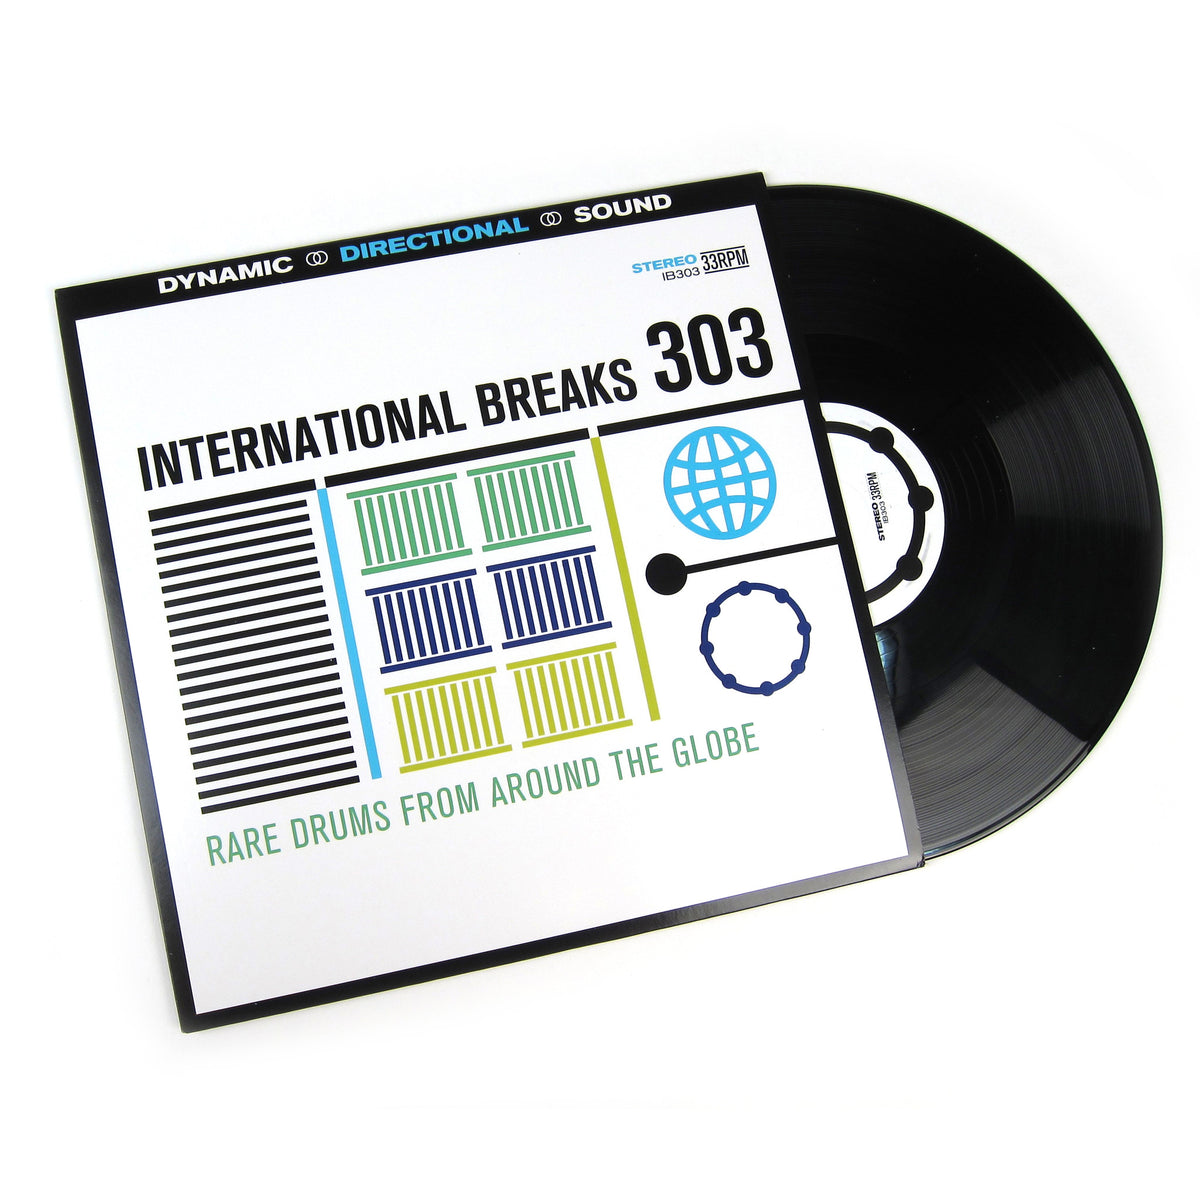 International Breaks Inc: International Breaks 303 - Rare Breaks From Around The Globe Vinyl LP